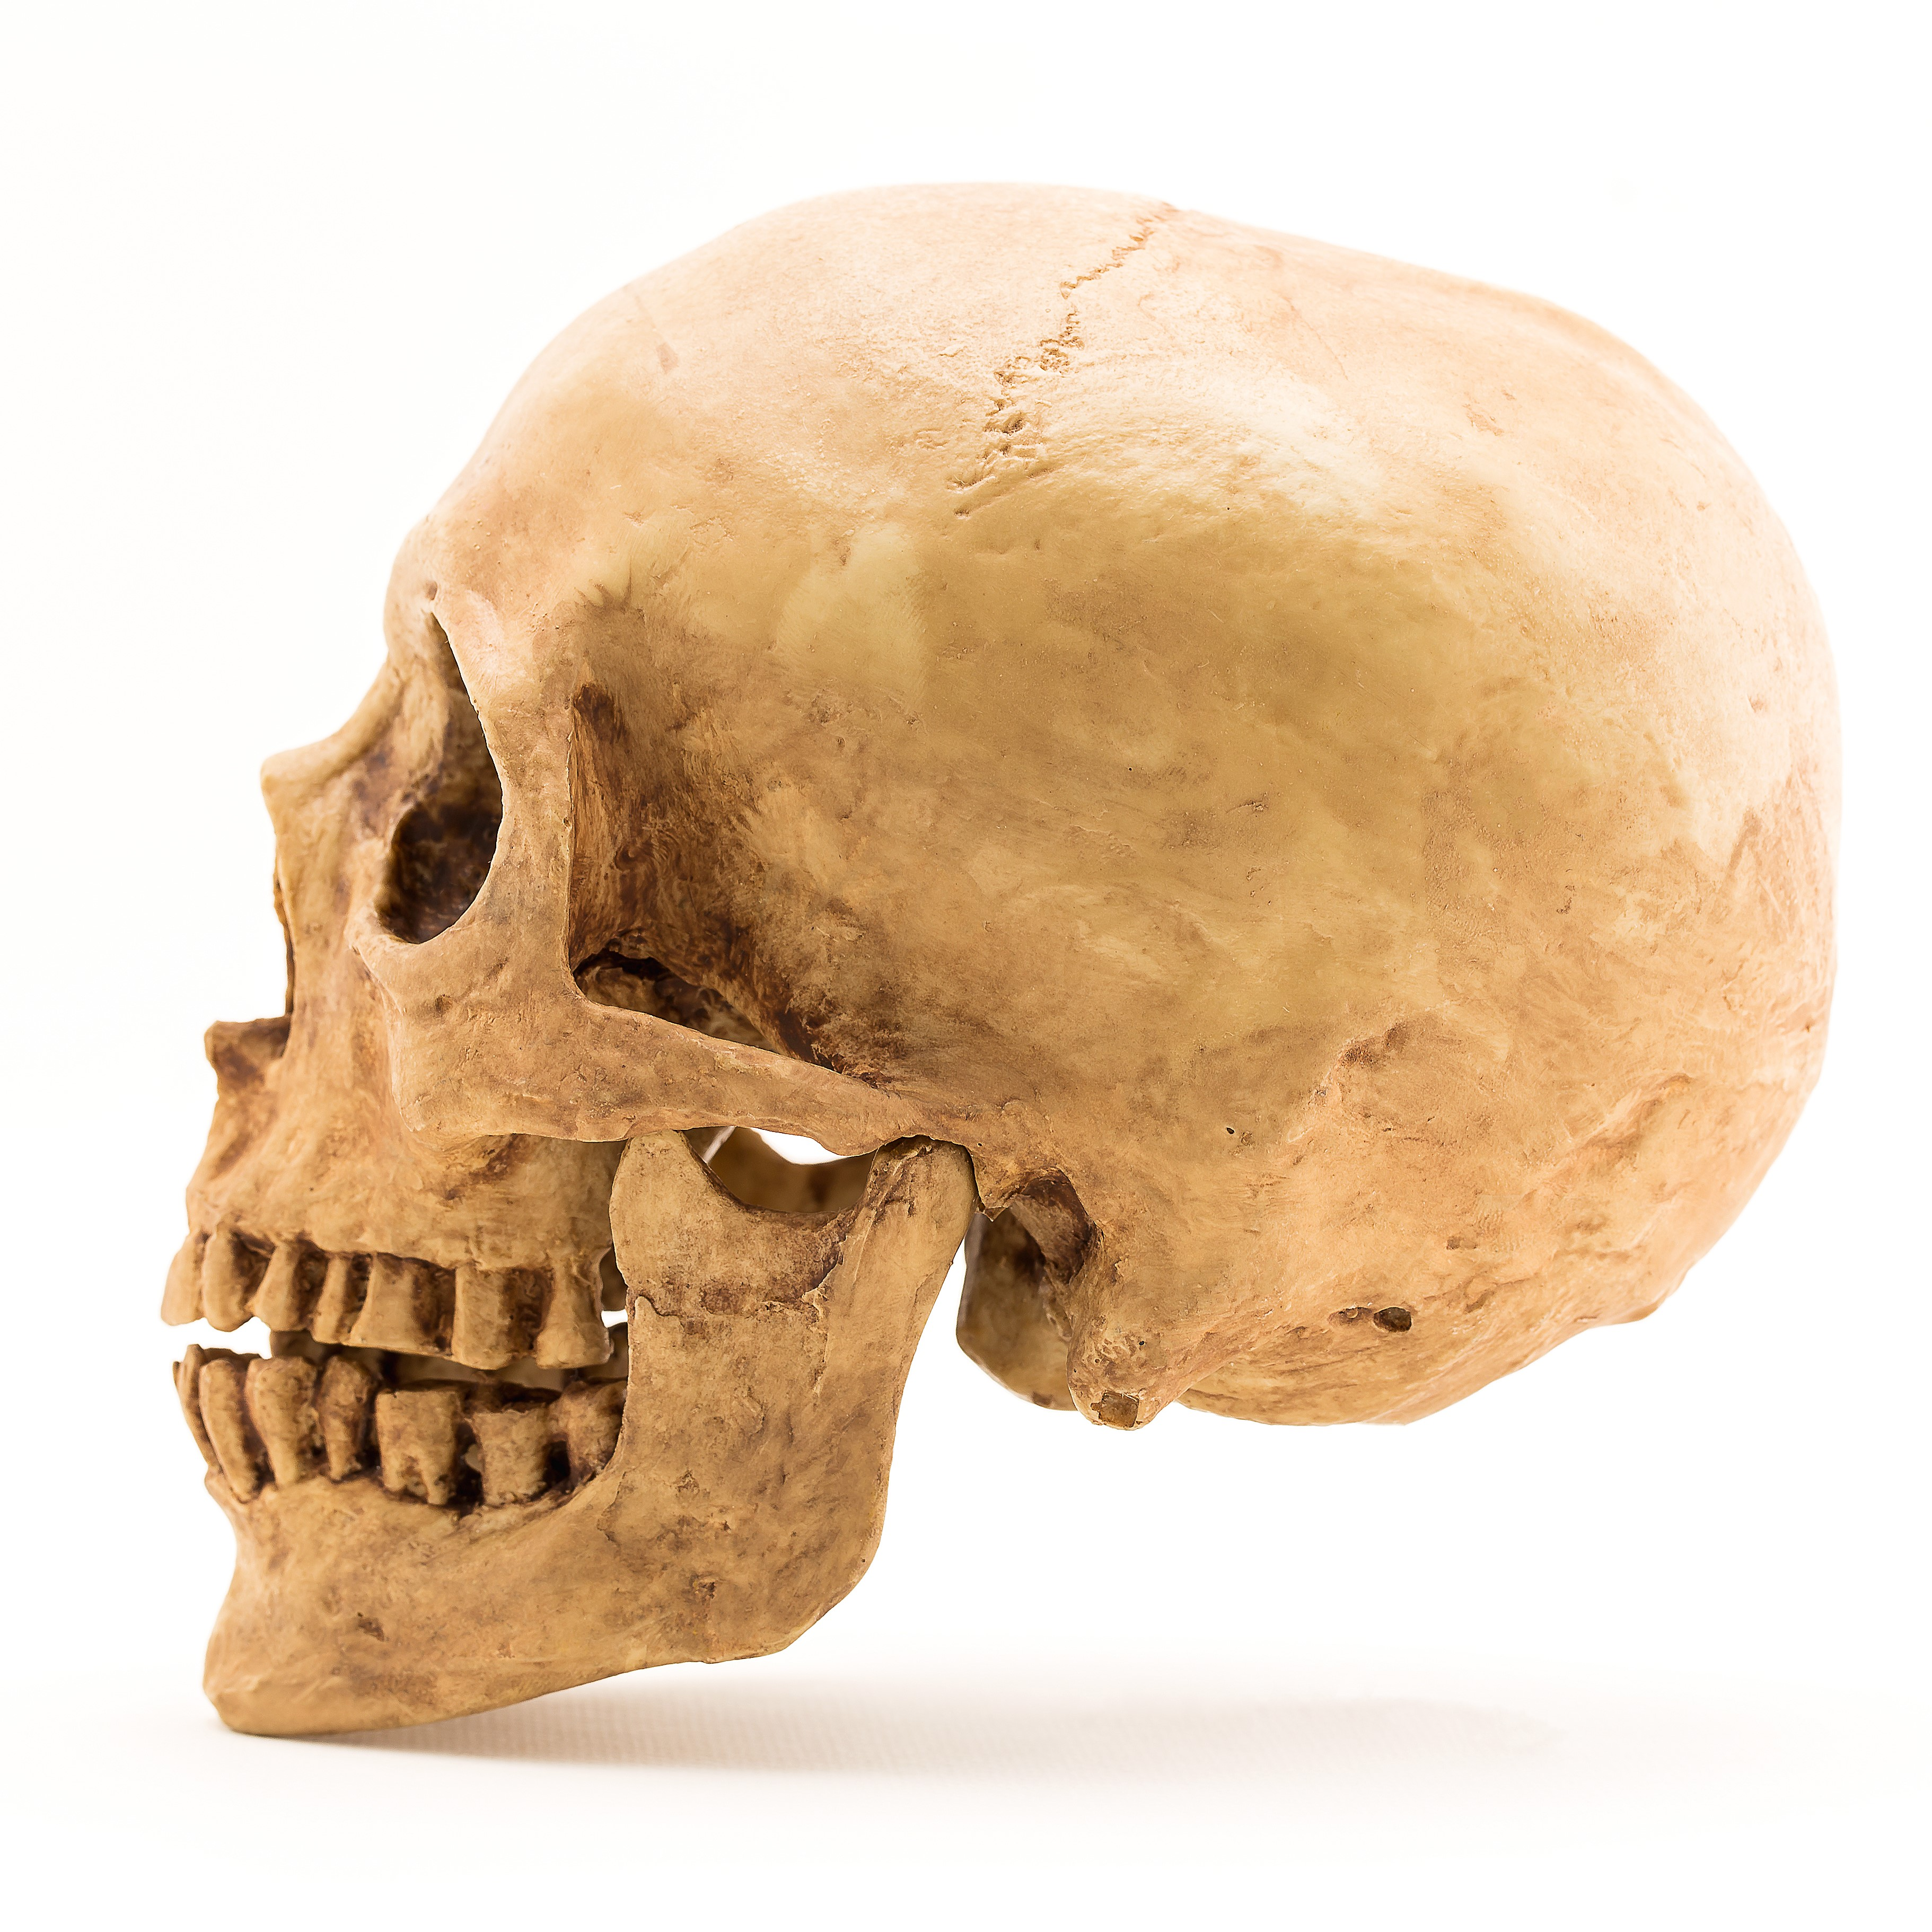 Africans Migrated from Continent Sooner Than We Thought, As 210,000-Year-Old Skull Found In Europe